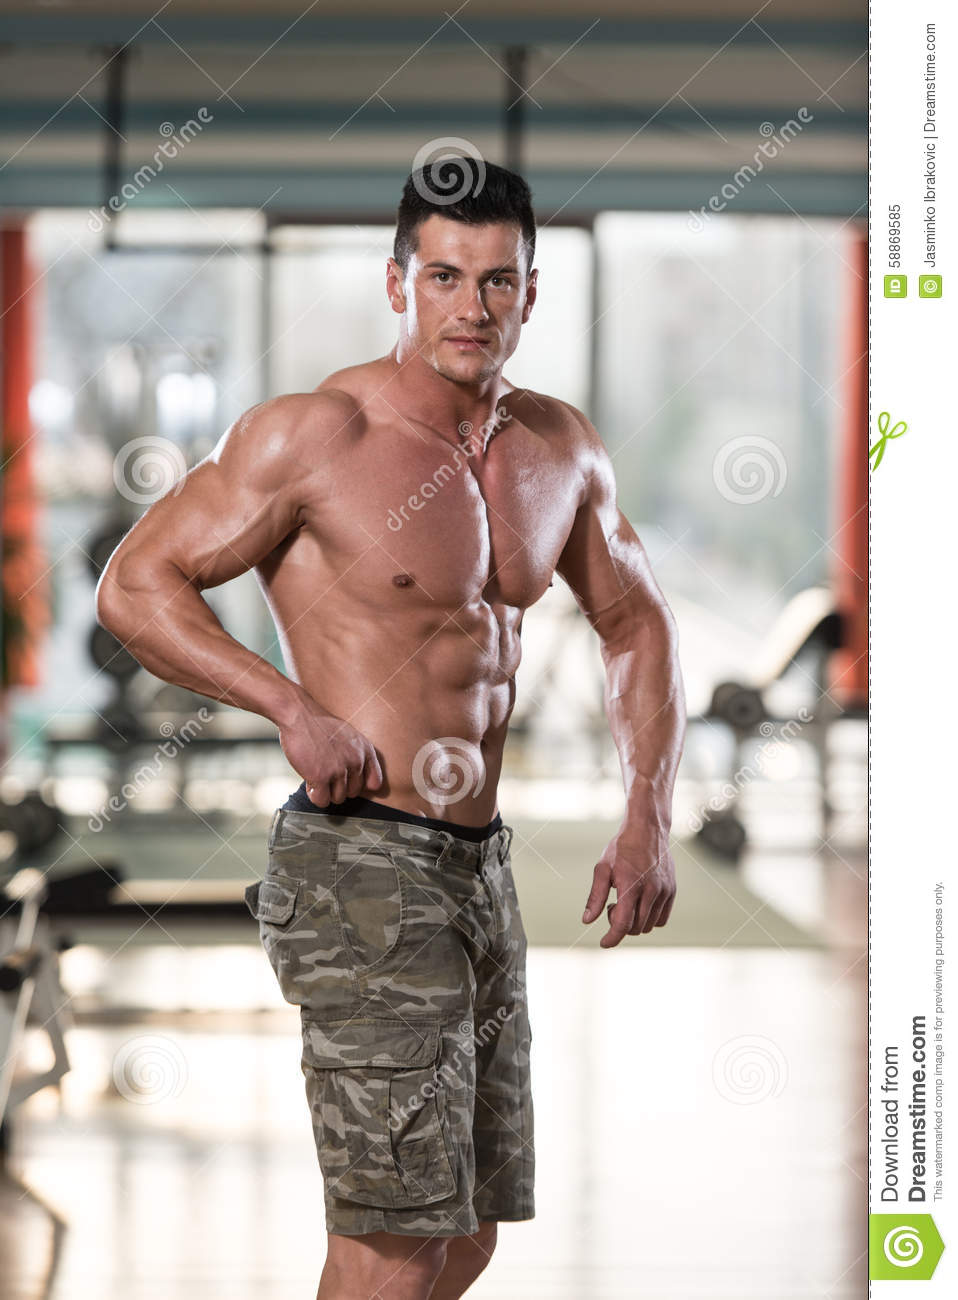 Man In Gym Showing His Well Trained Body Stock Image ...